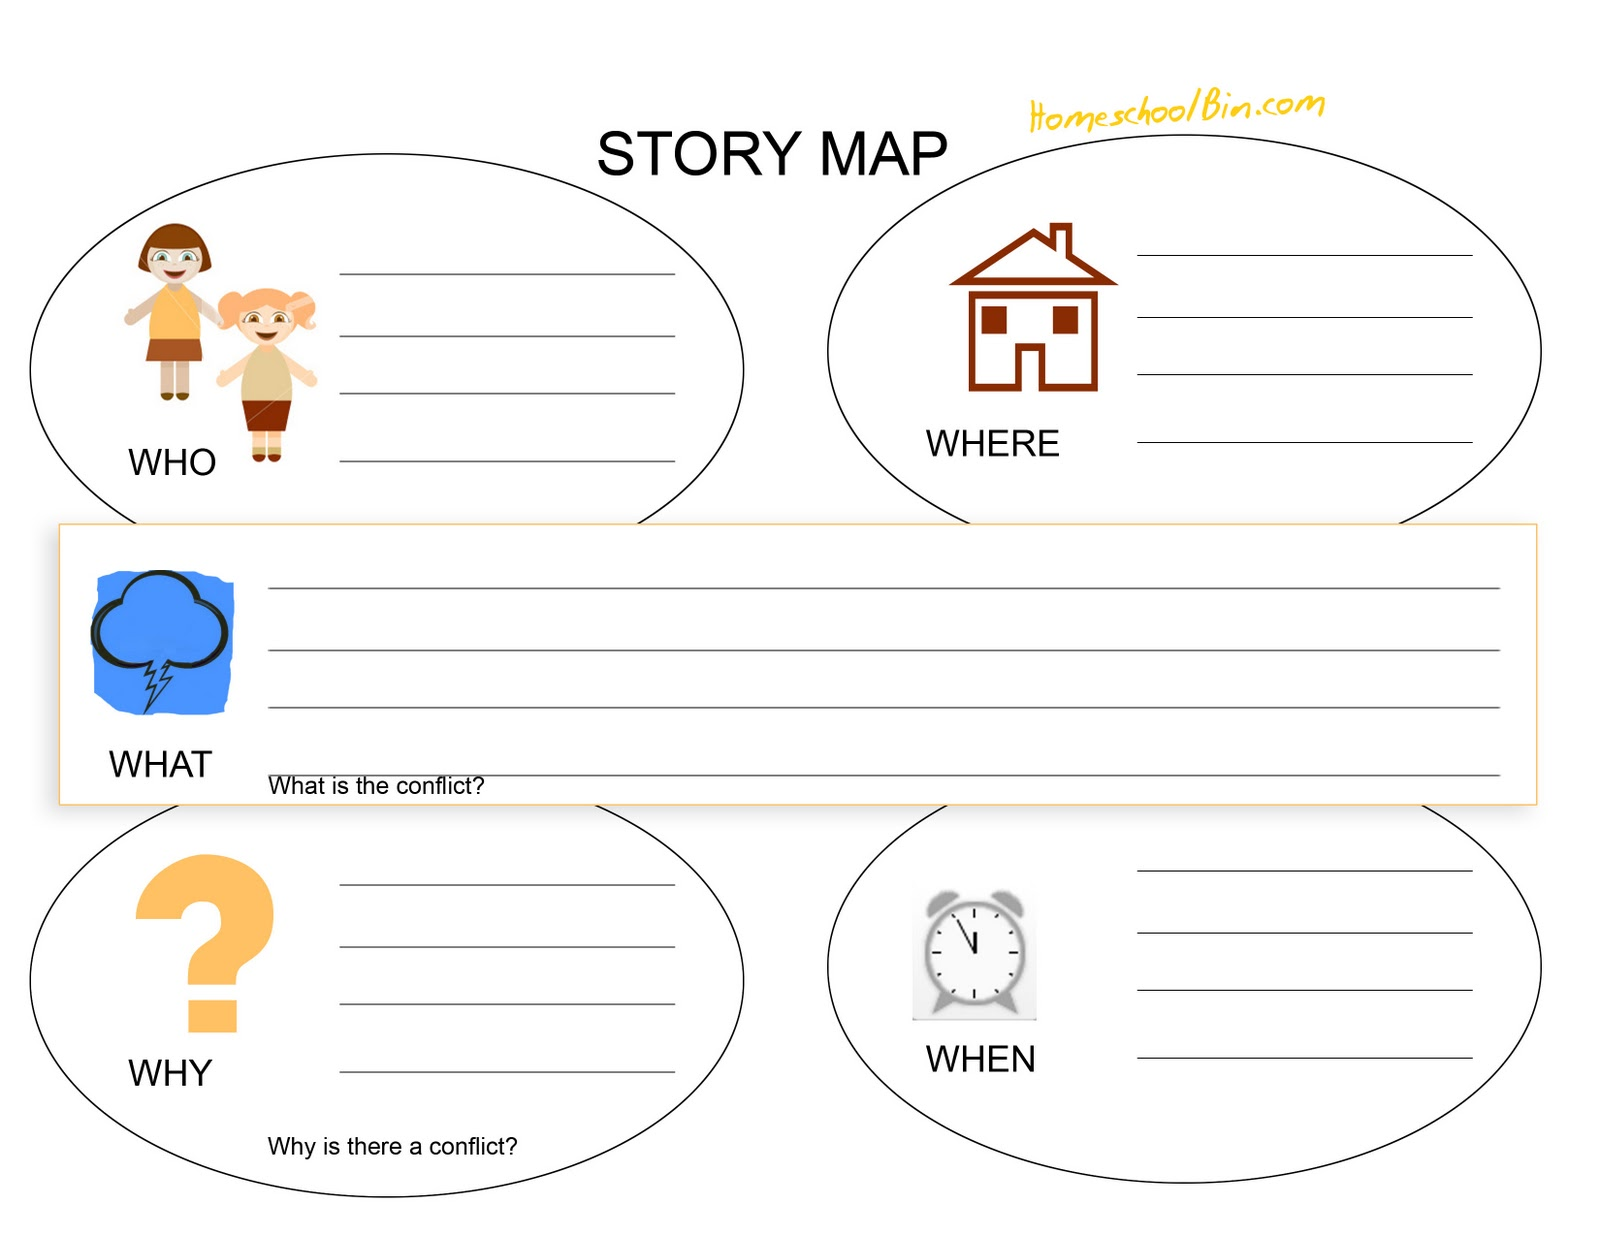 The Book Thief Plot Diagram 91 K5 Blazer Printable Story Map Templates Search Results Calendar 2015